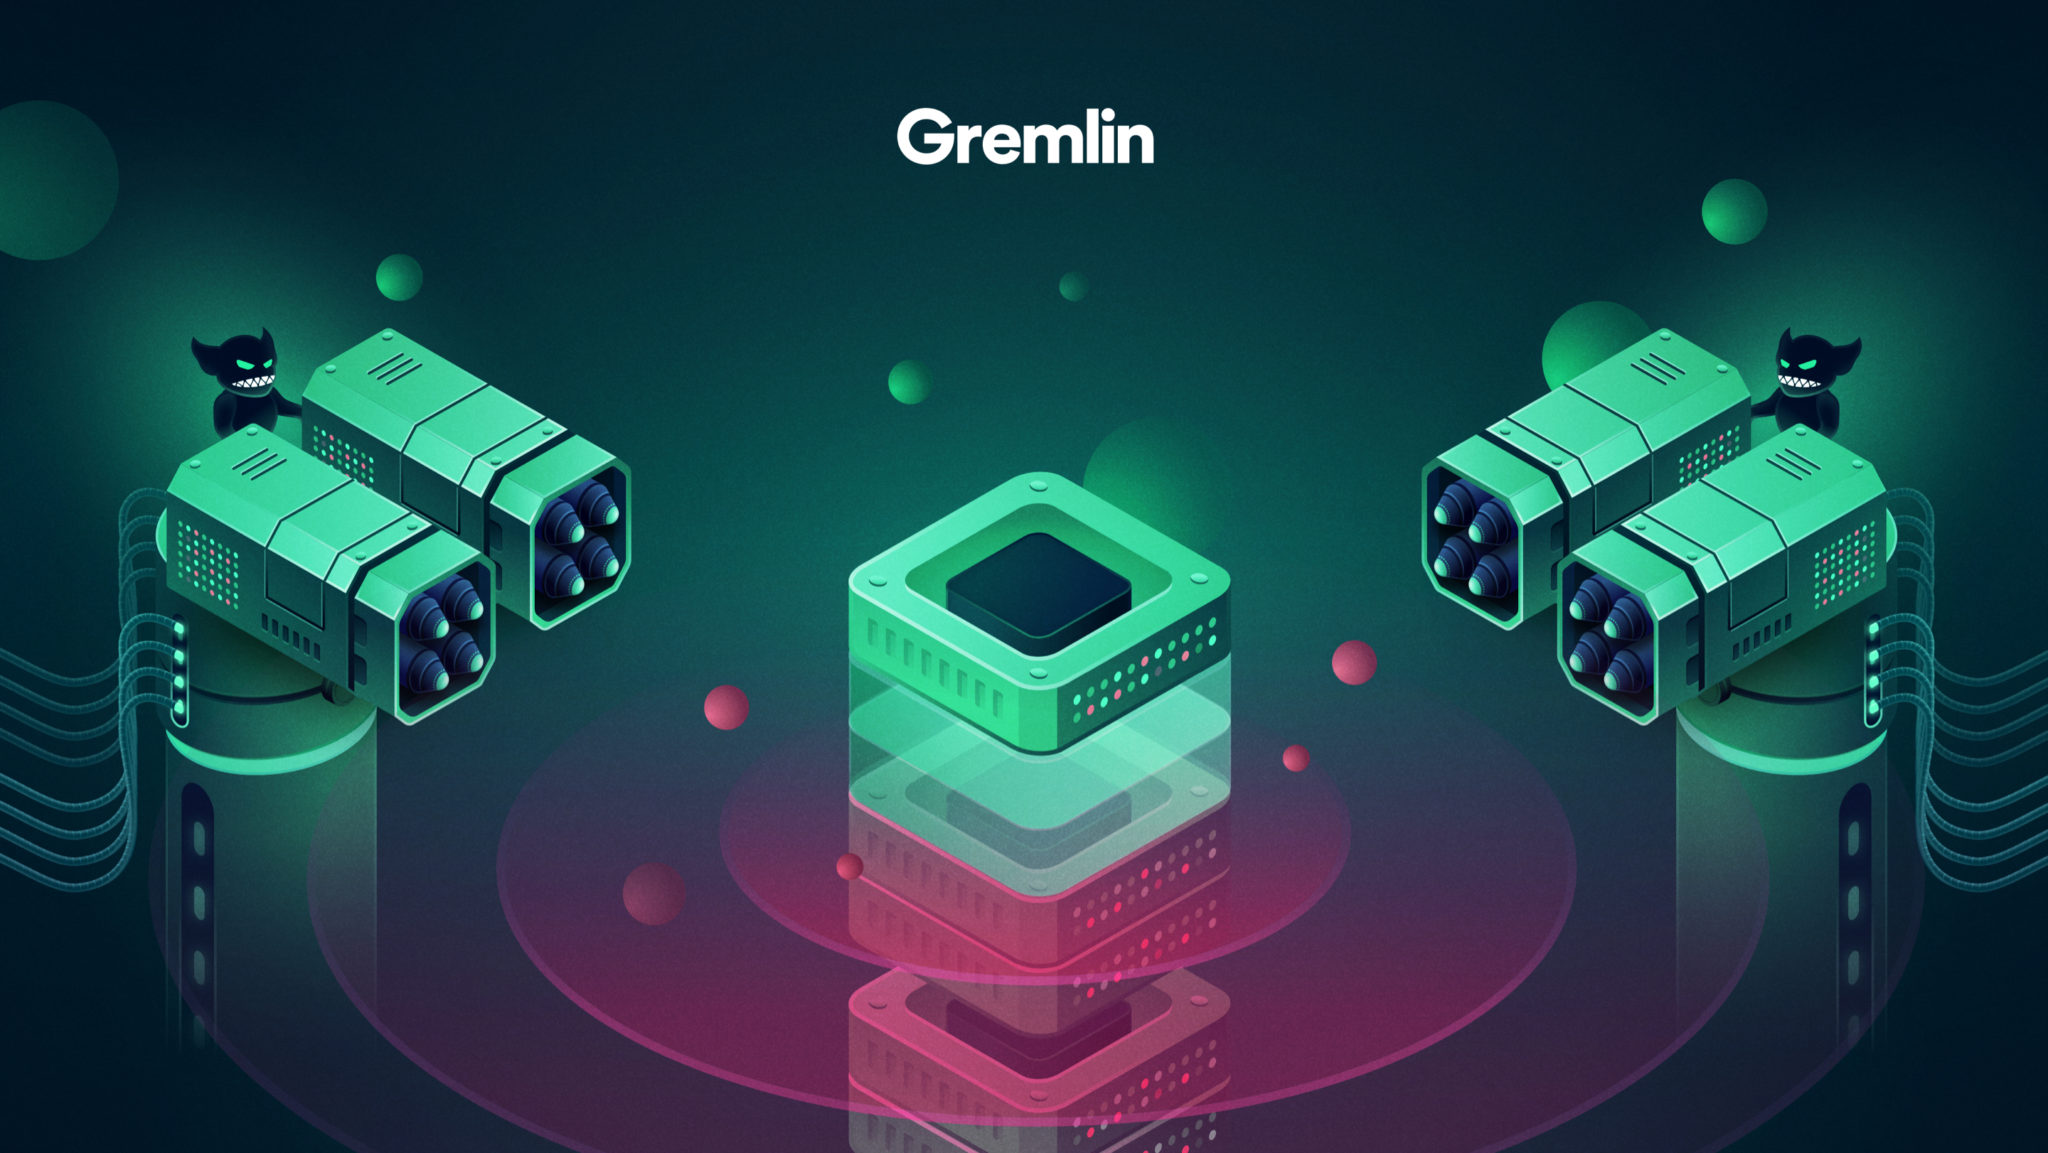 Illustration_02-Gremlin@2x